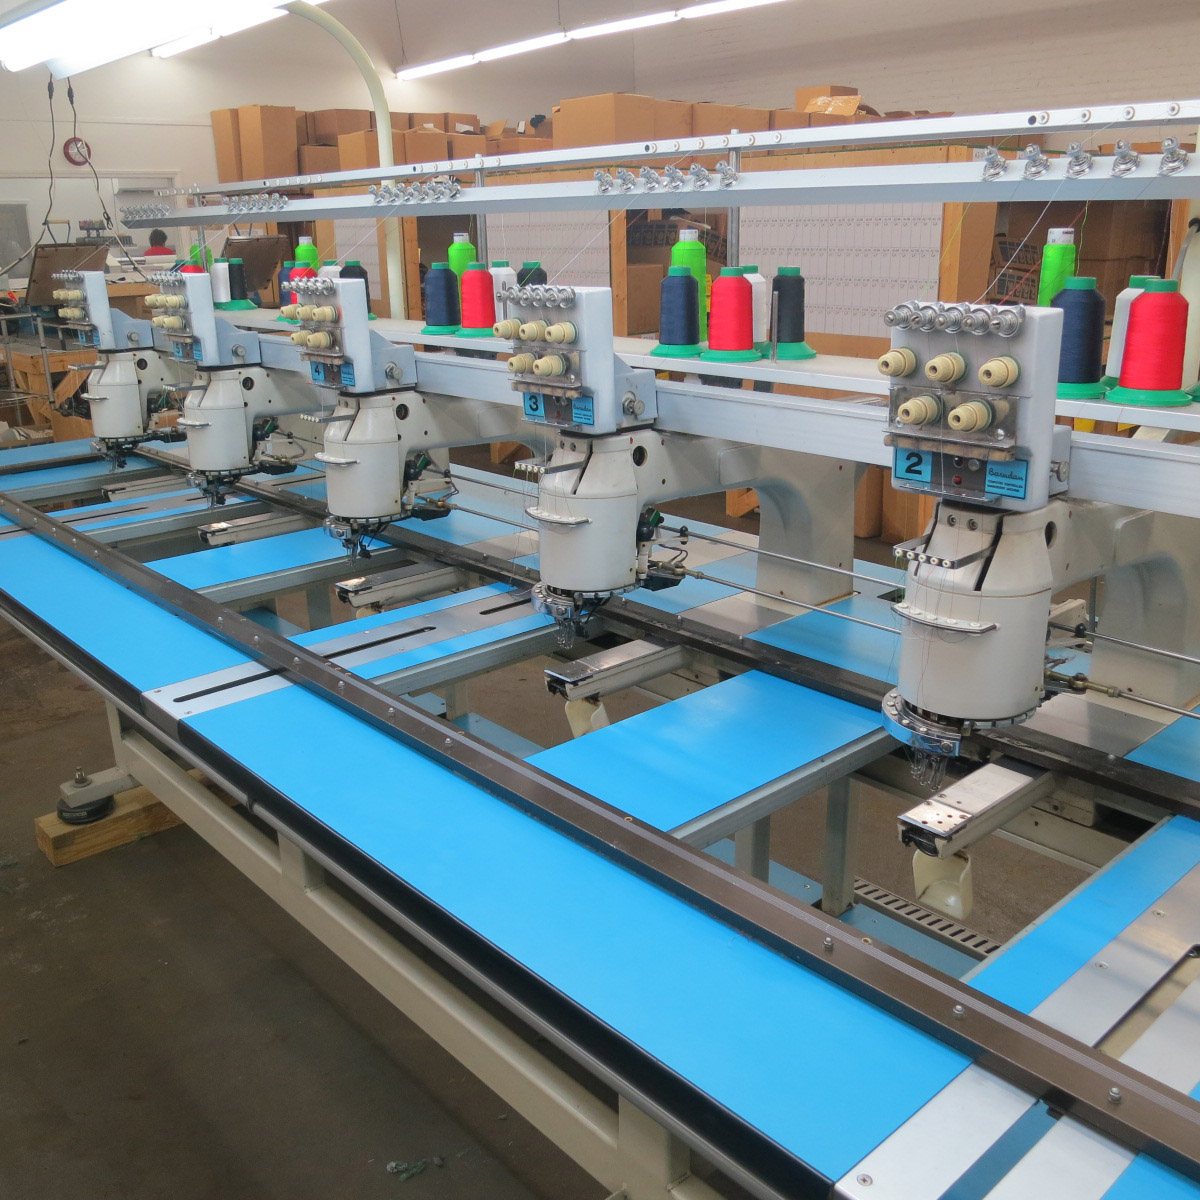 Barudan 6 Head Embroidery Machine